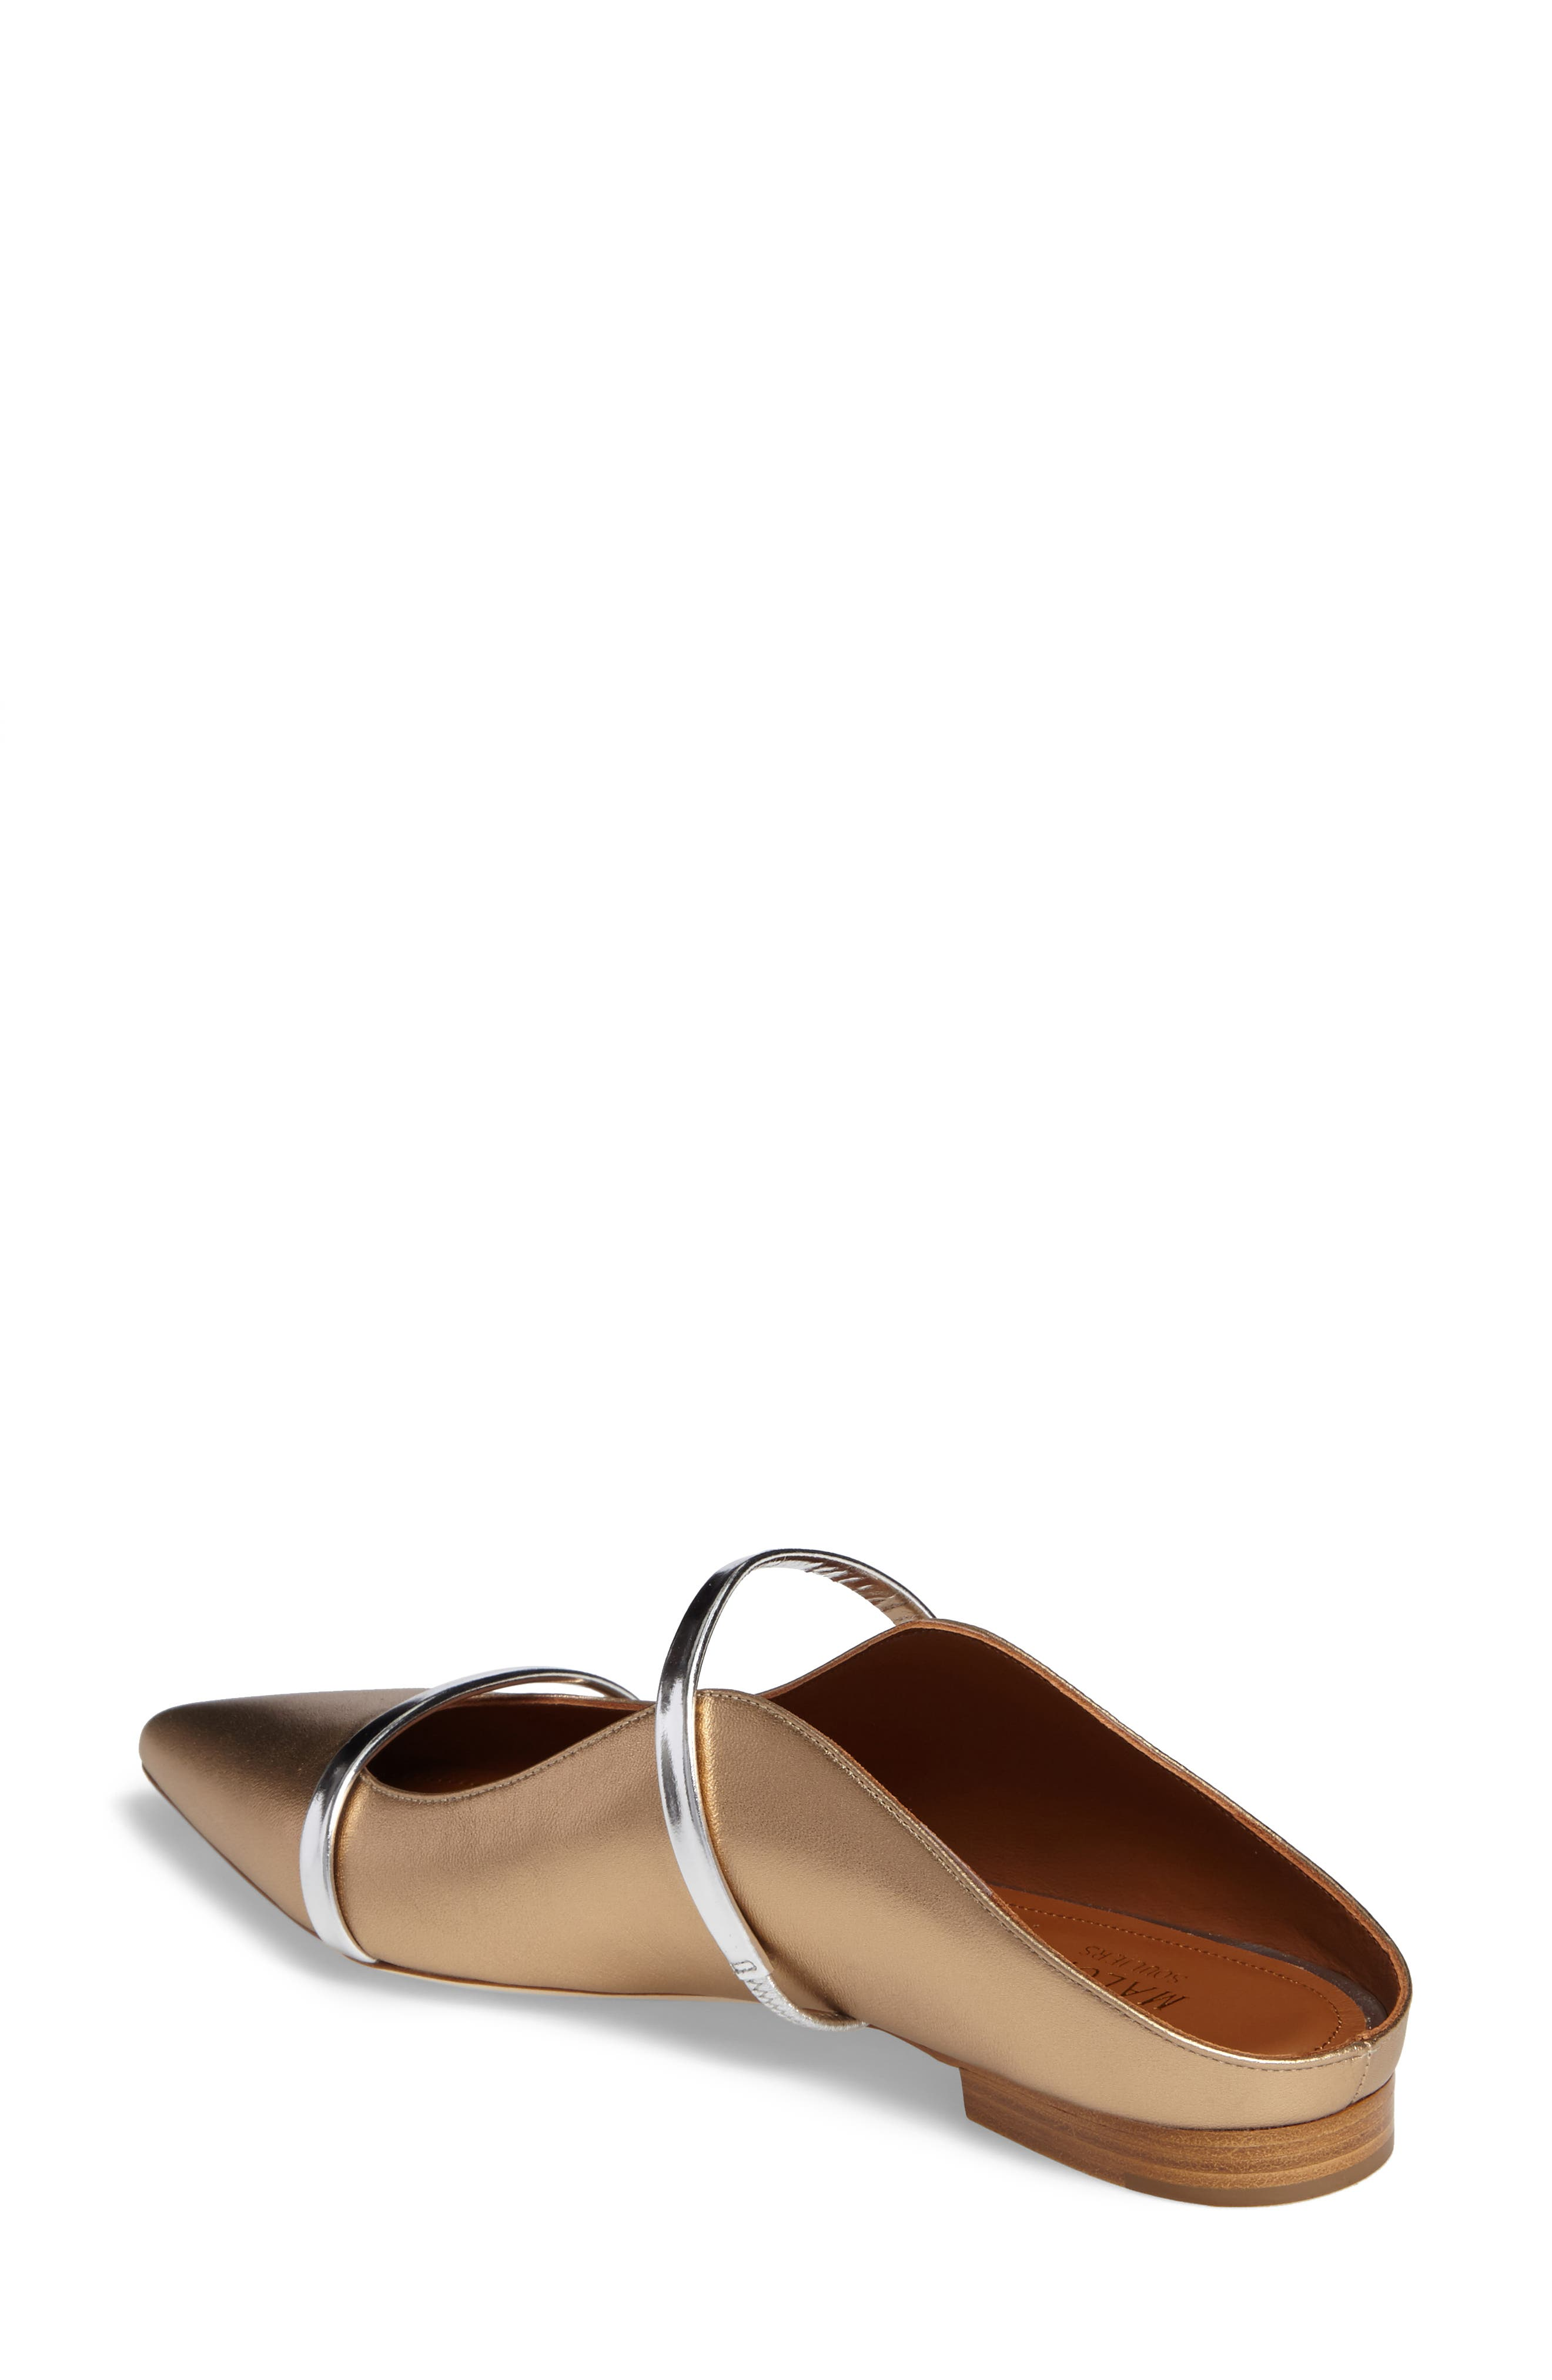 Maureen Pointy Toe Flat,                             Alternate thumbnail 2, color,                             GOLD/ SILVER